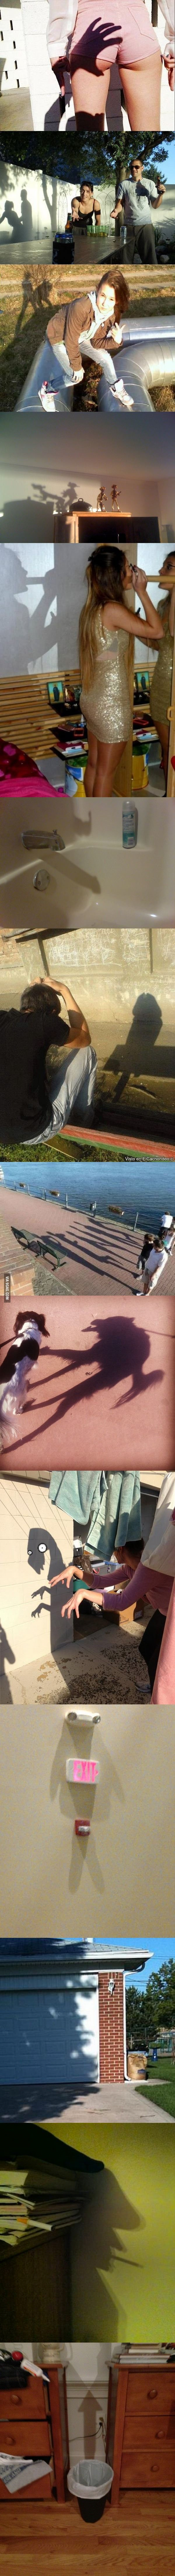 Sly Shadows...I can't stop laughing after seeing this. 12th is a face